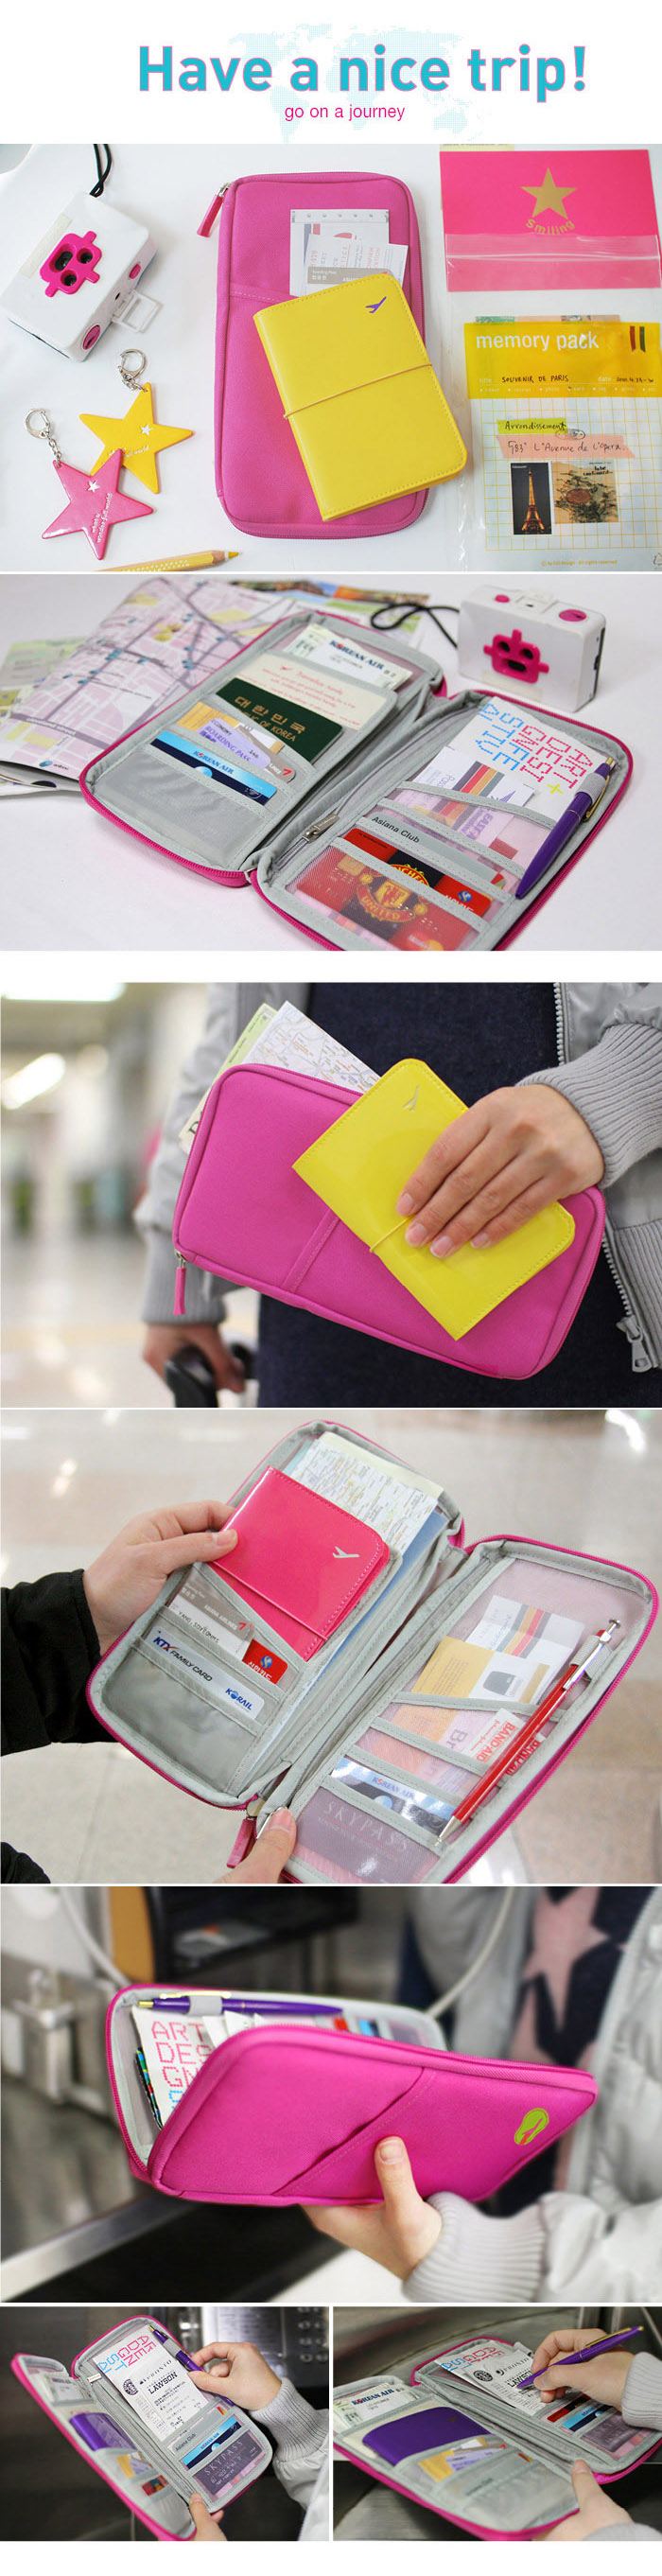 multifunctional-pocket-for-passport-air-ticket-holder-06